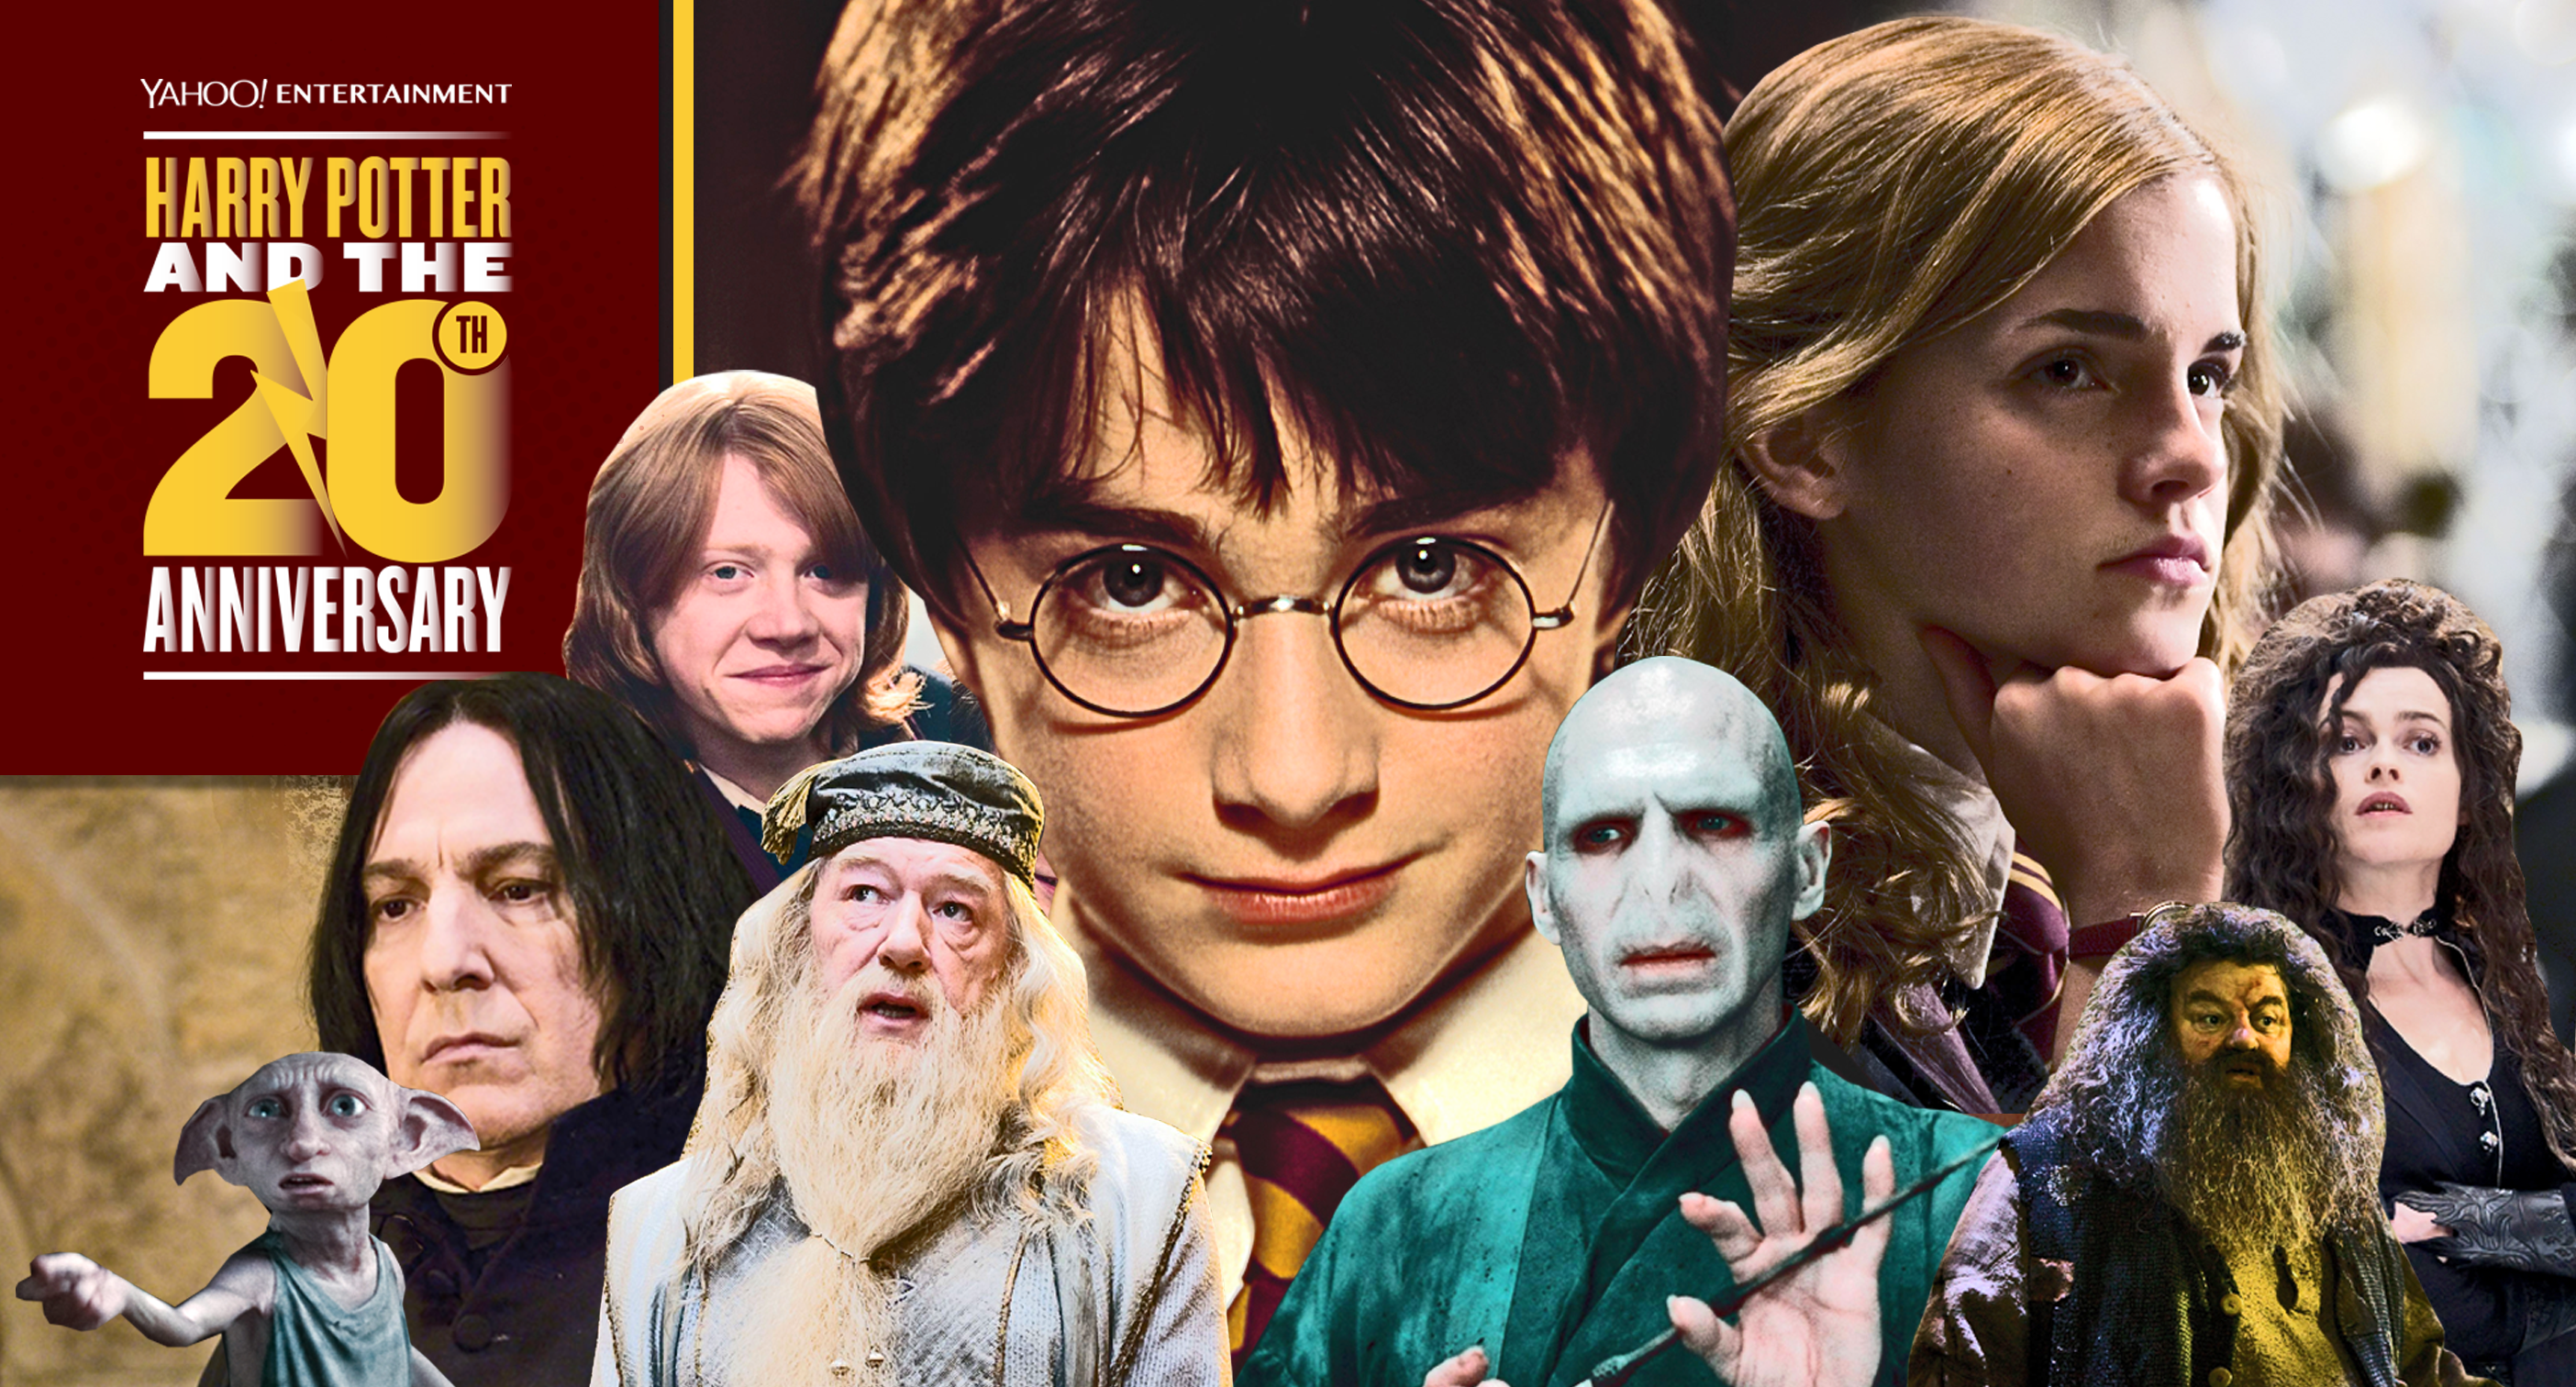 I Watched All 8 Harry Potter Movies For The First Time